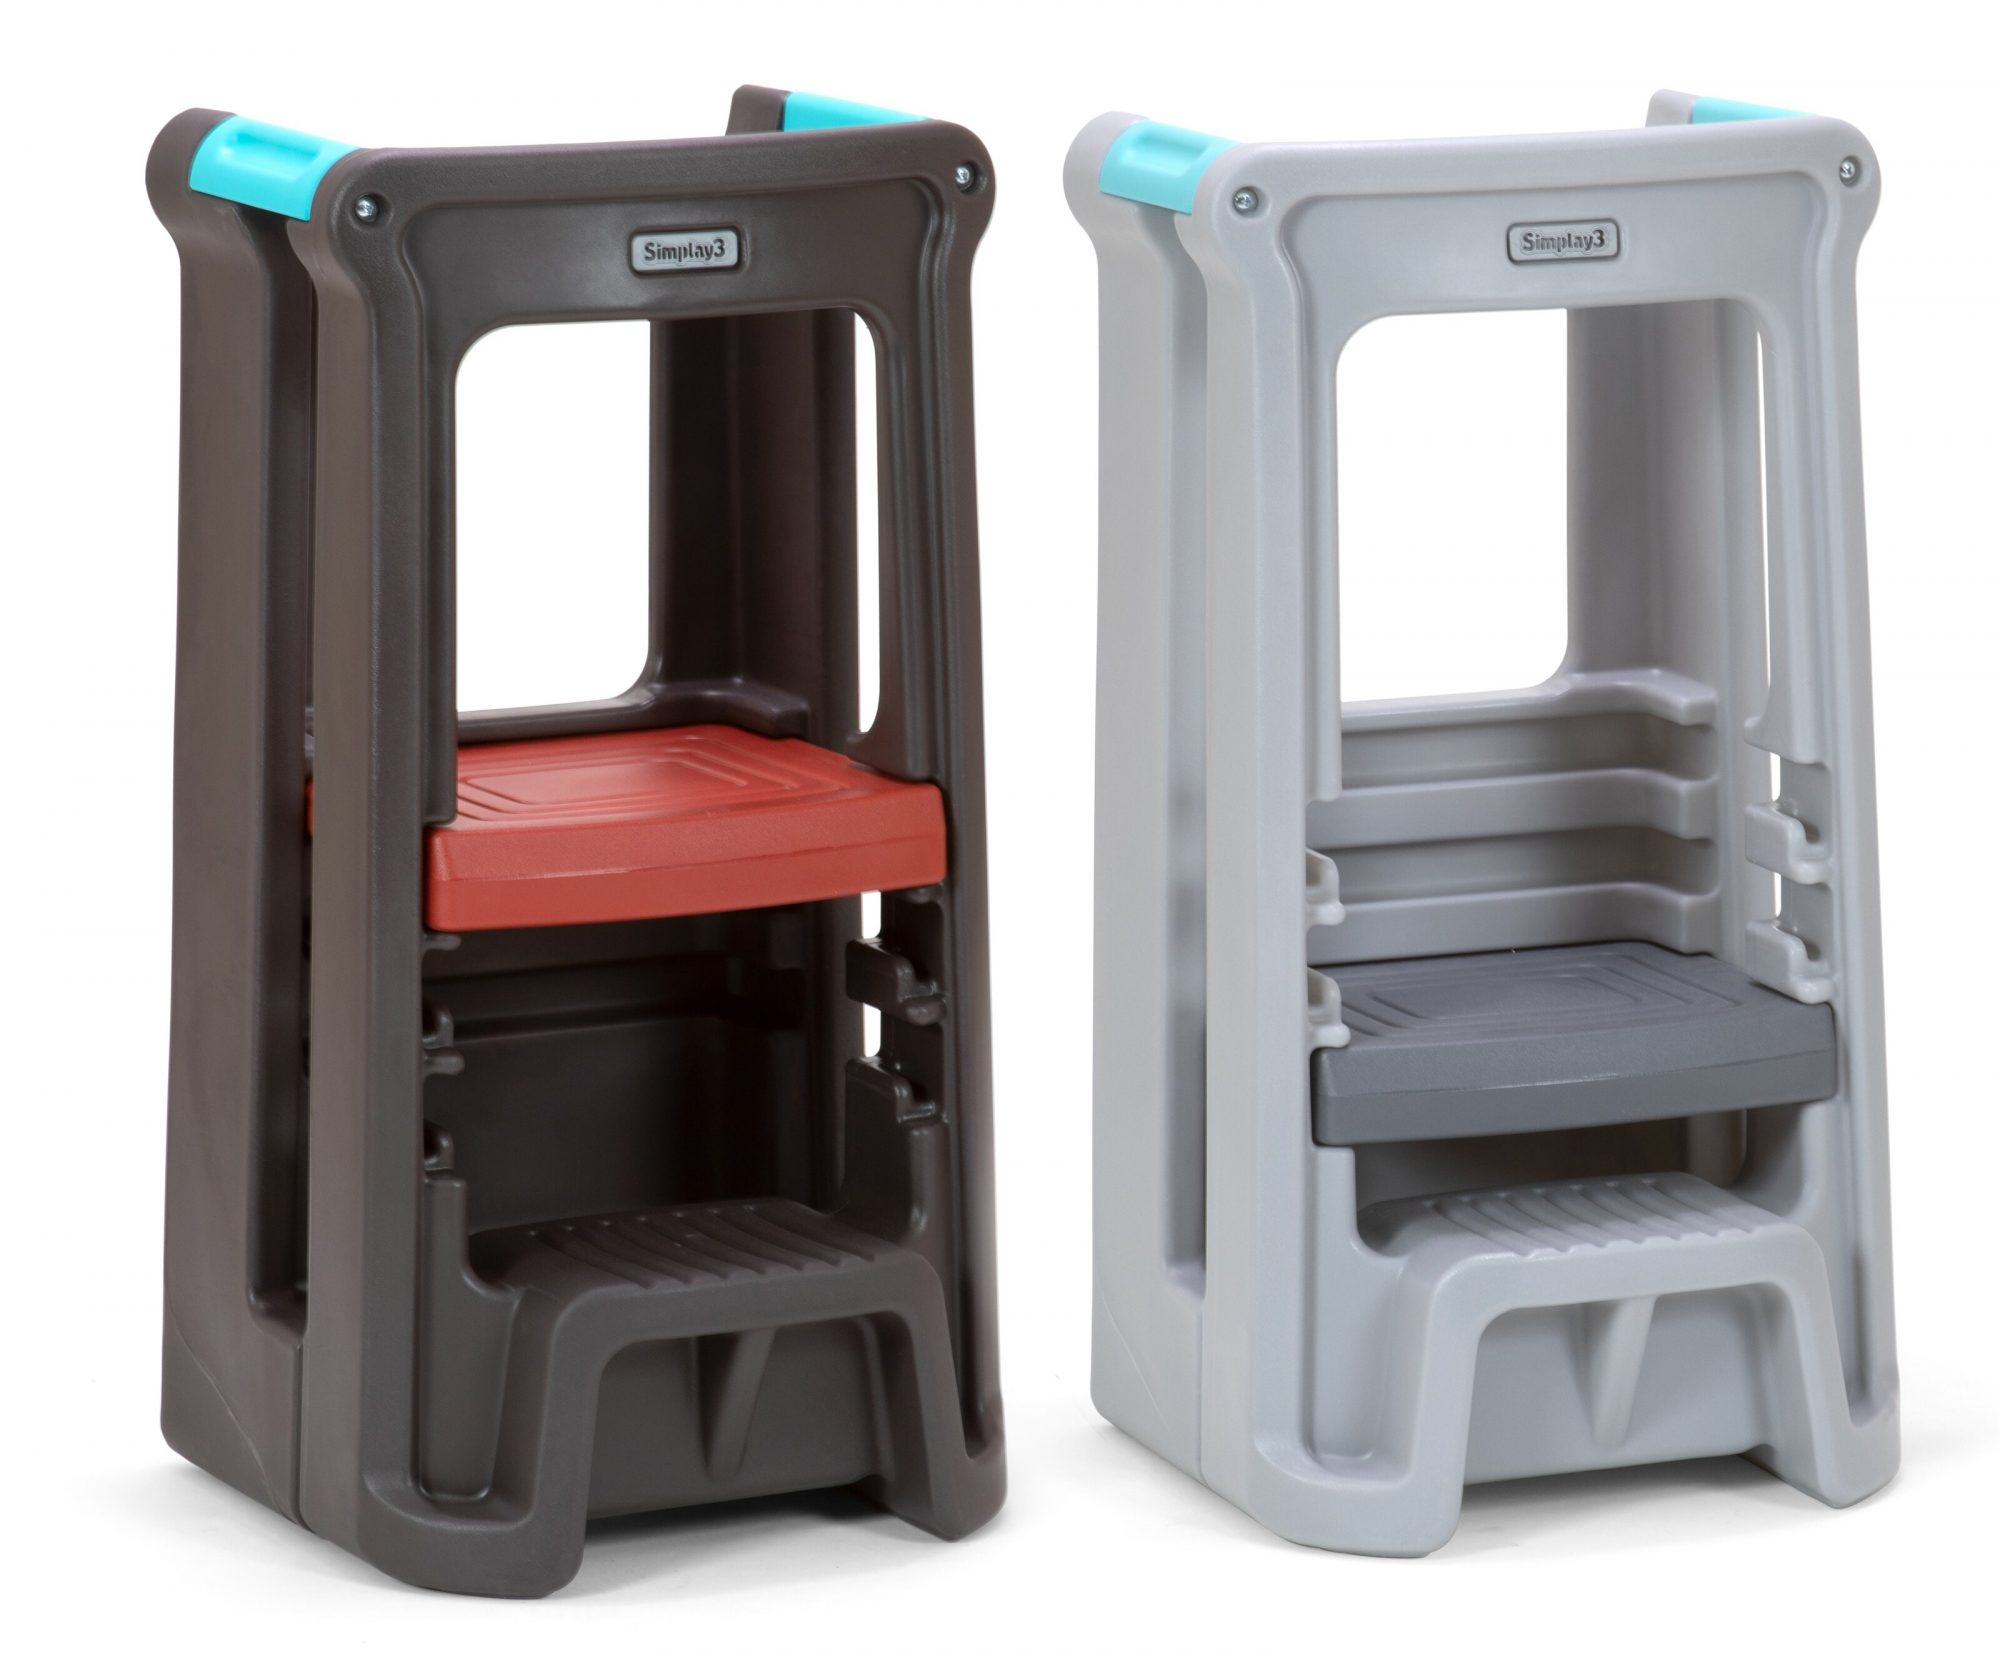 Two Simplay3 Toddler Tower Adjustable Kitchen Stools , one brown and one gray, side by side on a white background